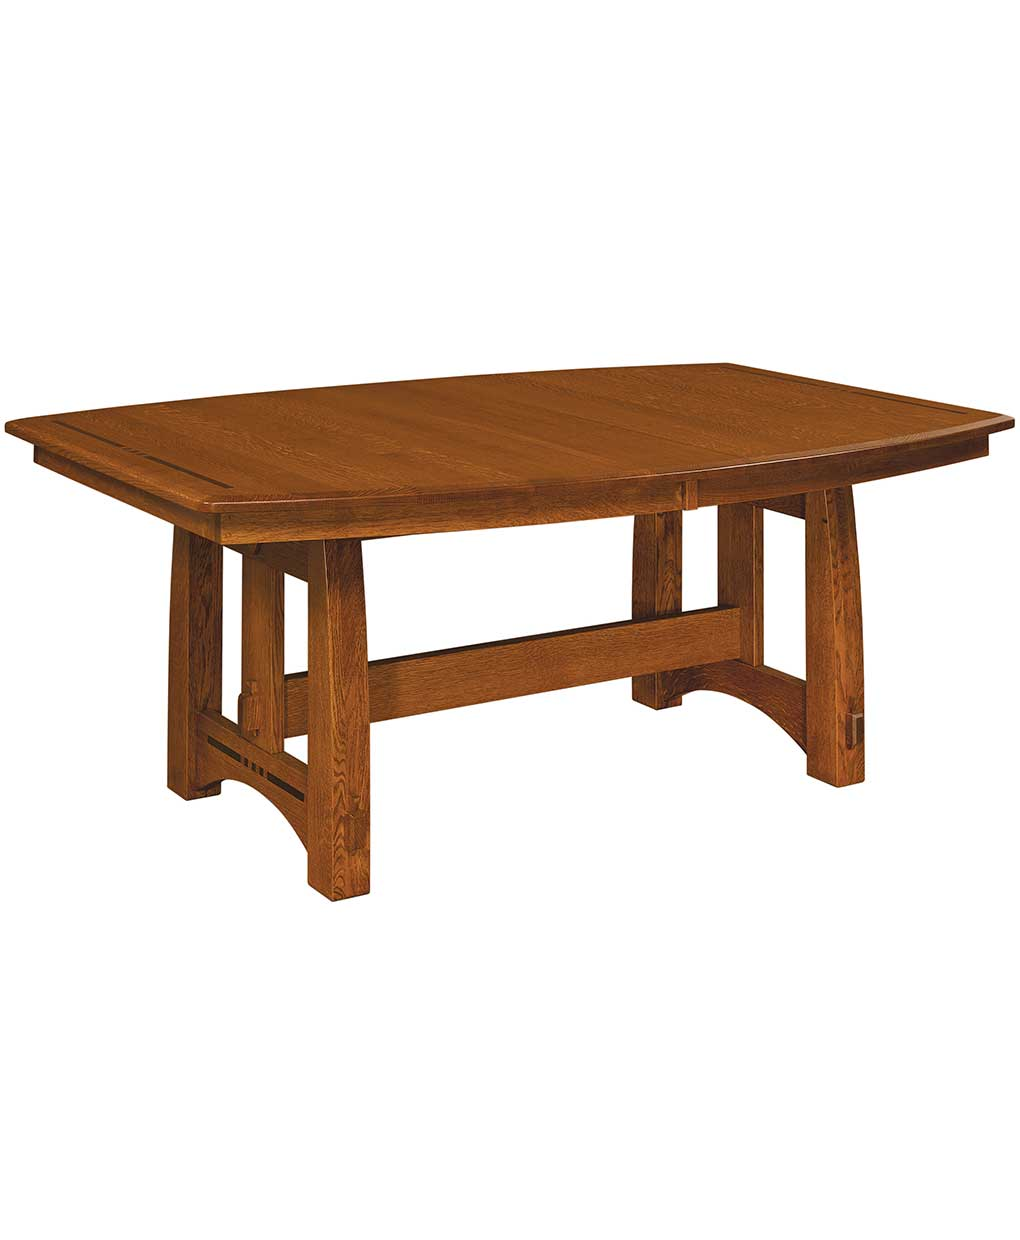 Colebrook Trestle Dining Table Amish Direct Furniture